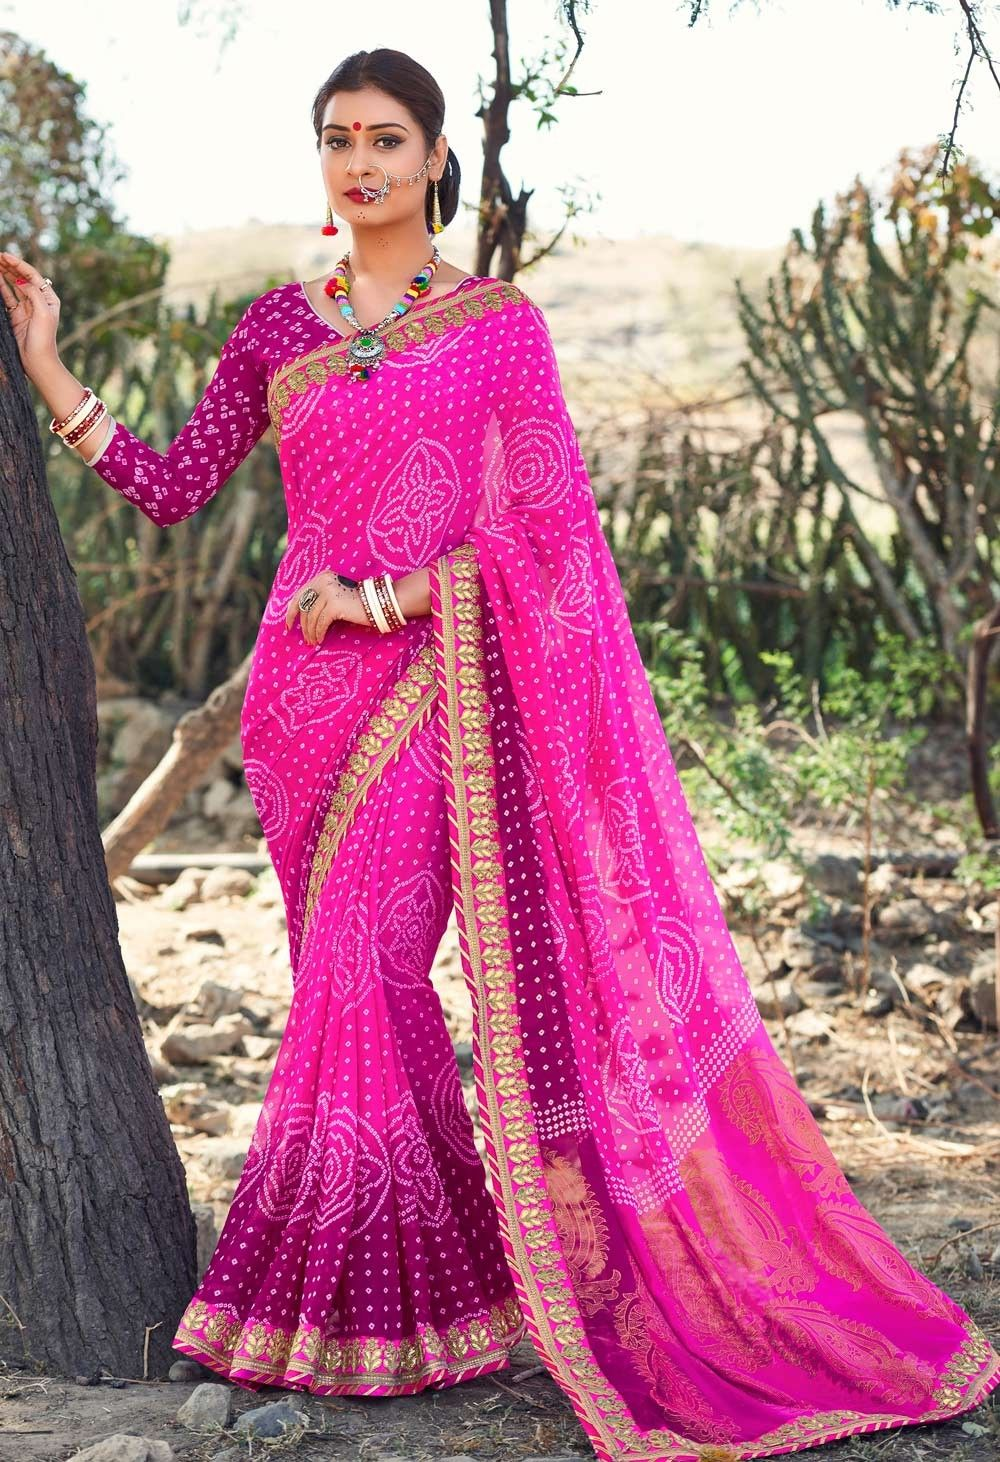 451869c501 Fancy Gujarati Tie And Dye bandhani Saree With heavy Lace Work border